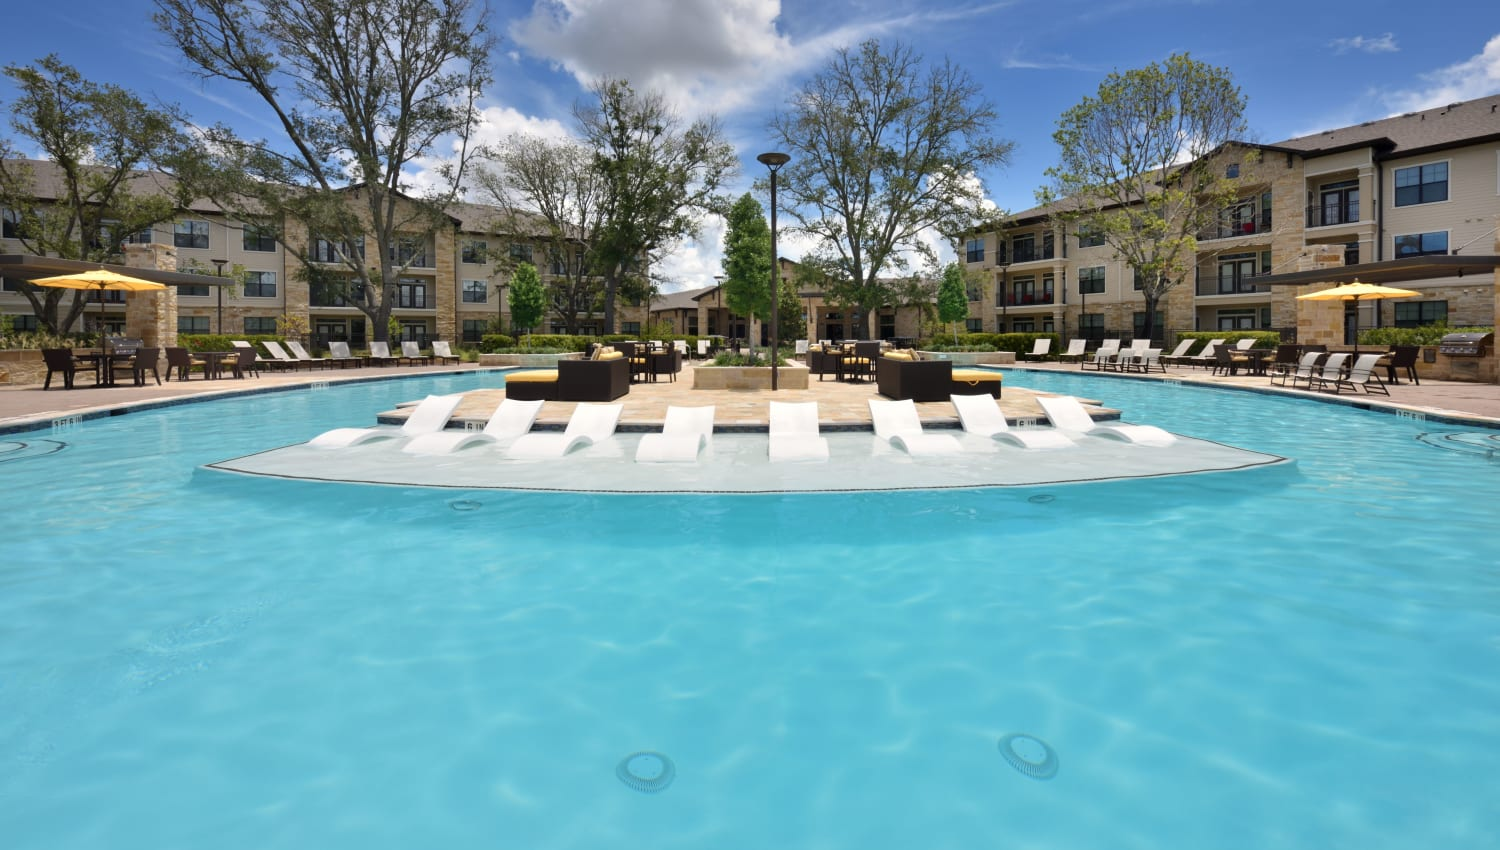 Sparkling pool with island with lounge chairs at Olympus Falcon Landing in Katy, Texas